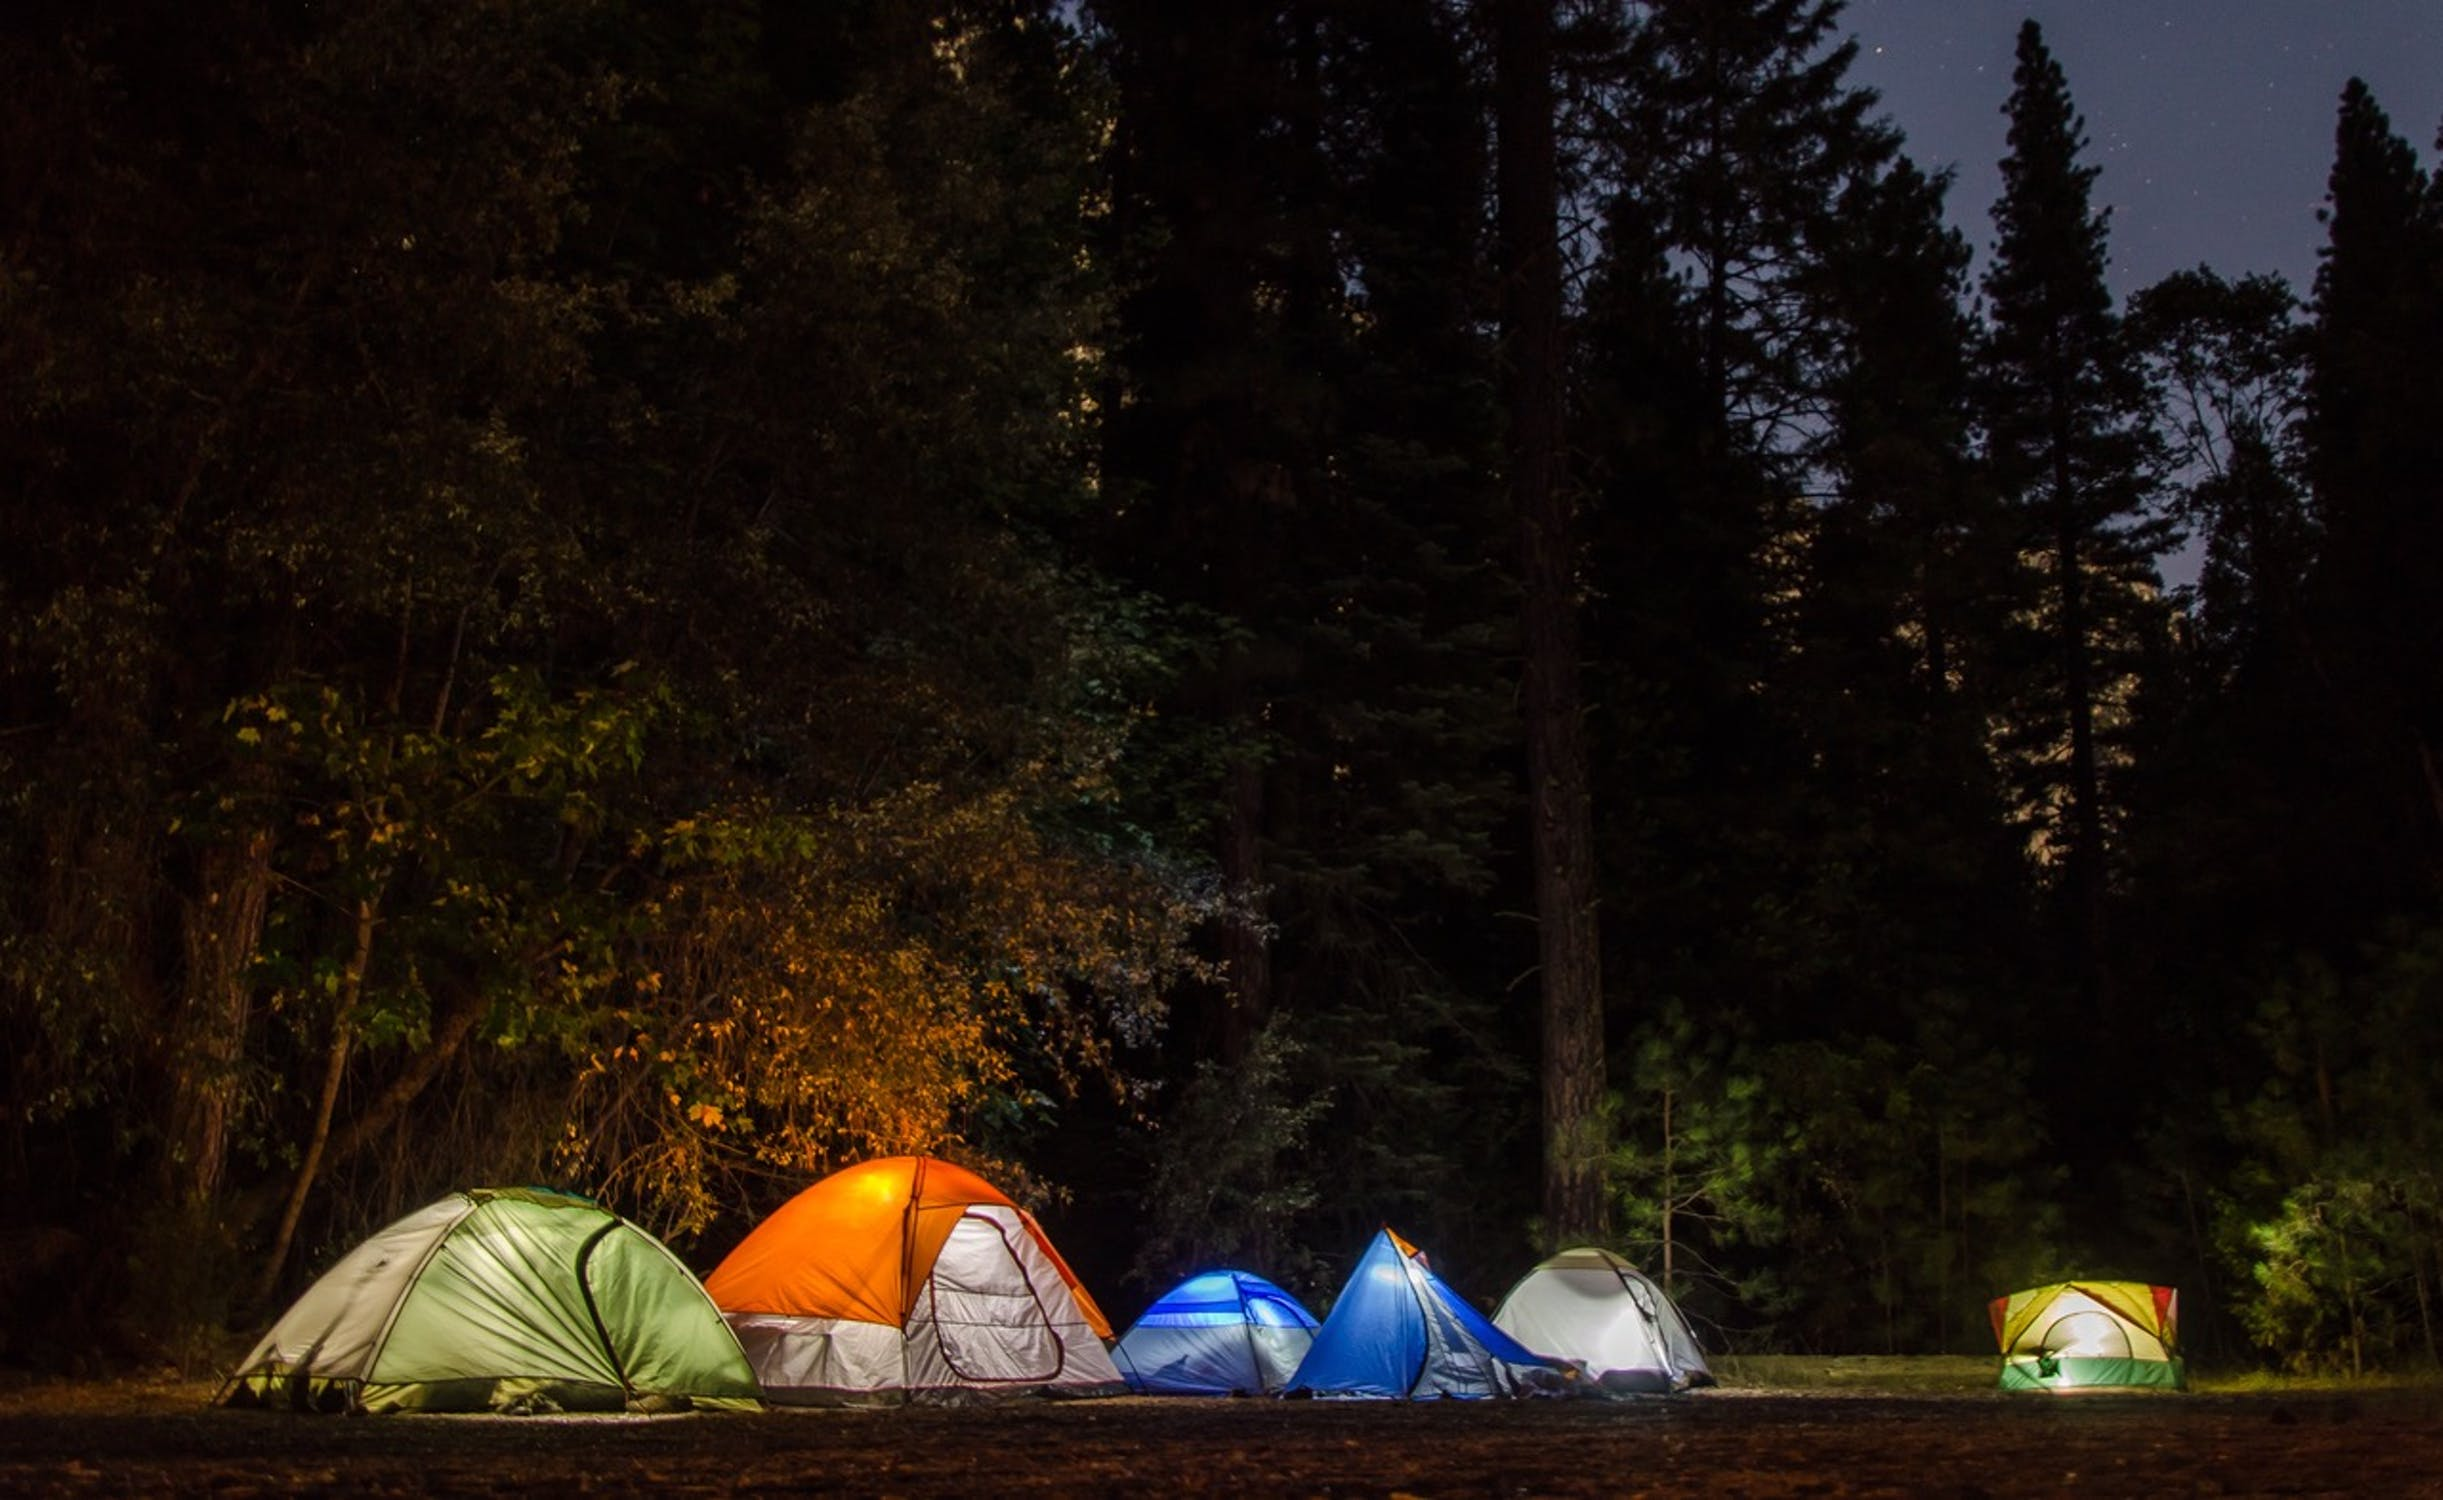 Camping Tips for You and Your Family